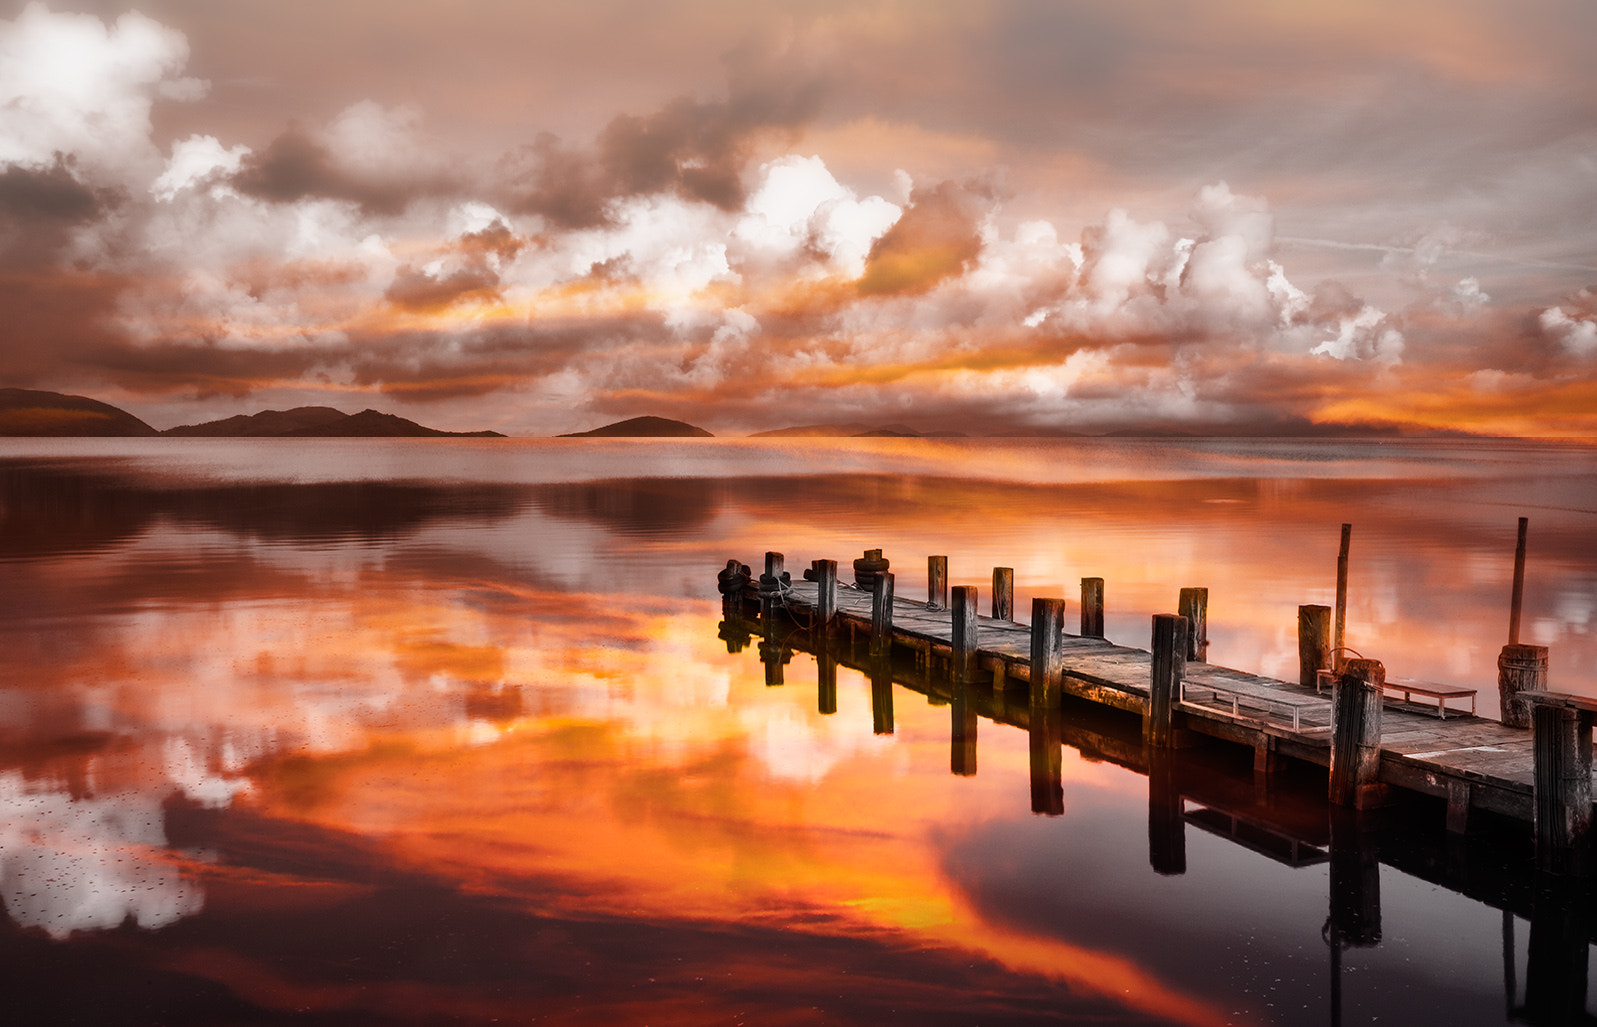 Photograph Sunset Pier by Marco Carmassi on 500px